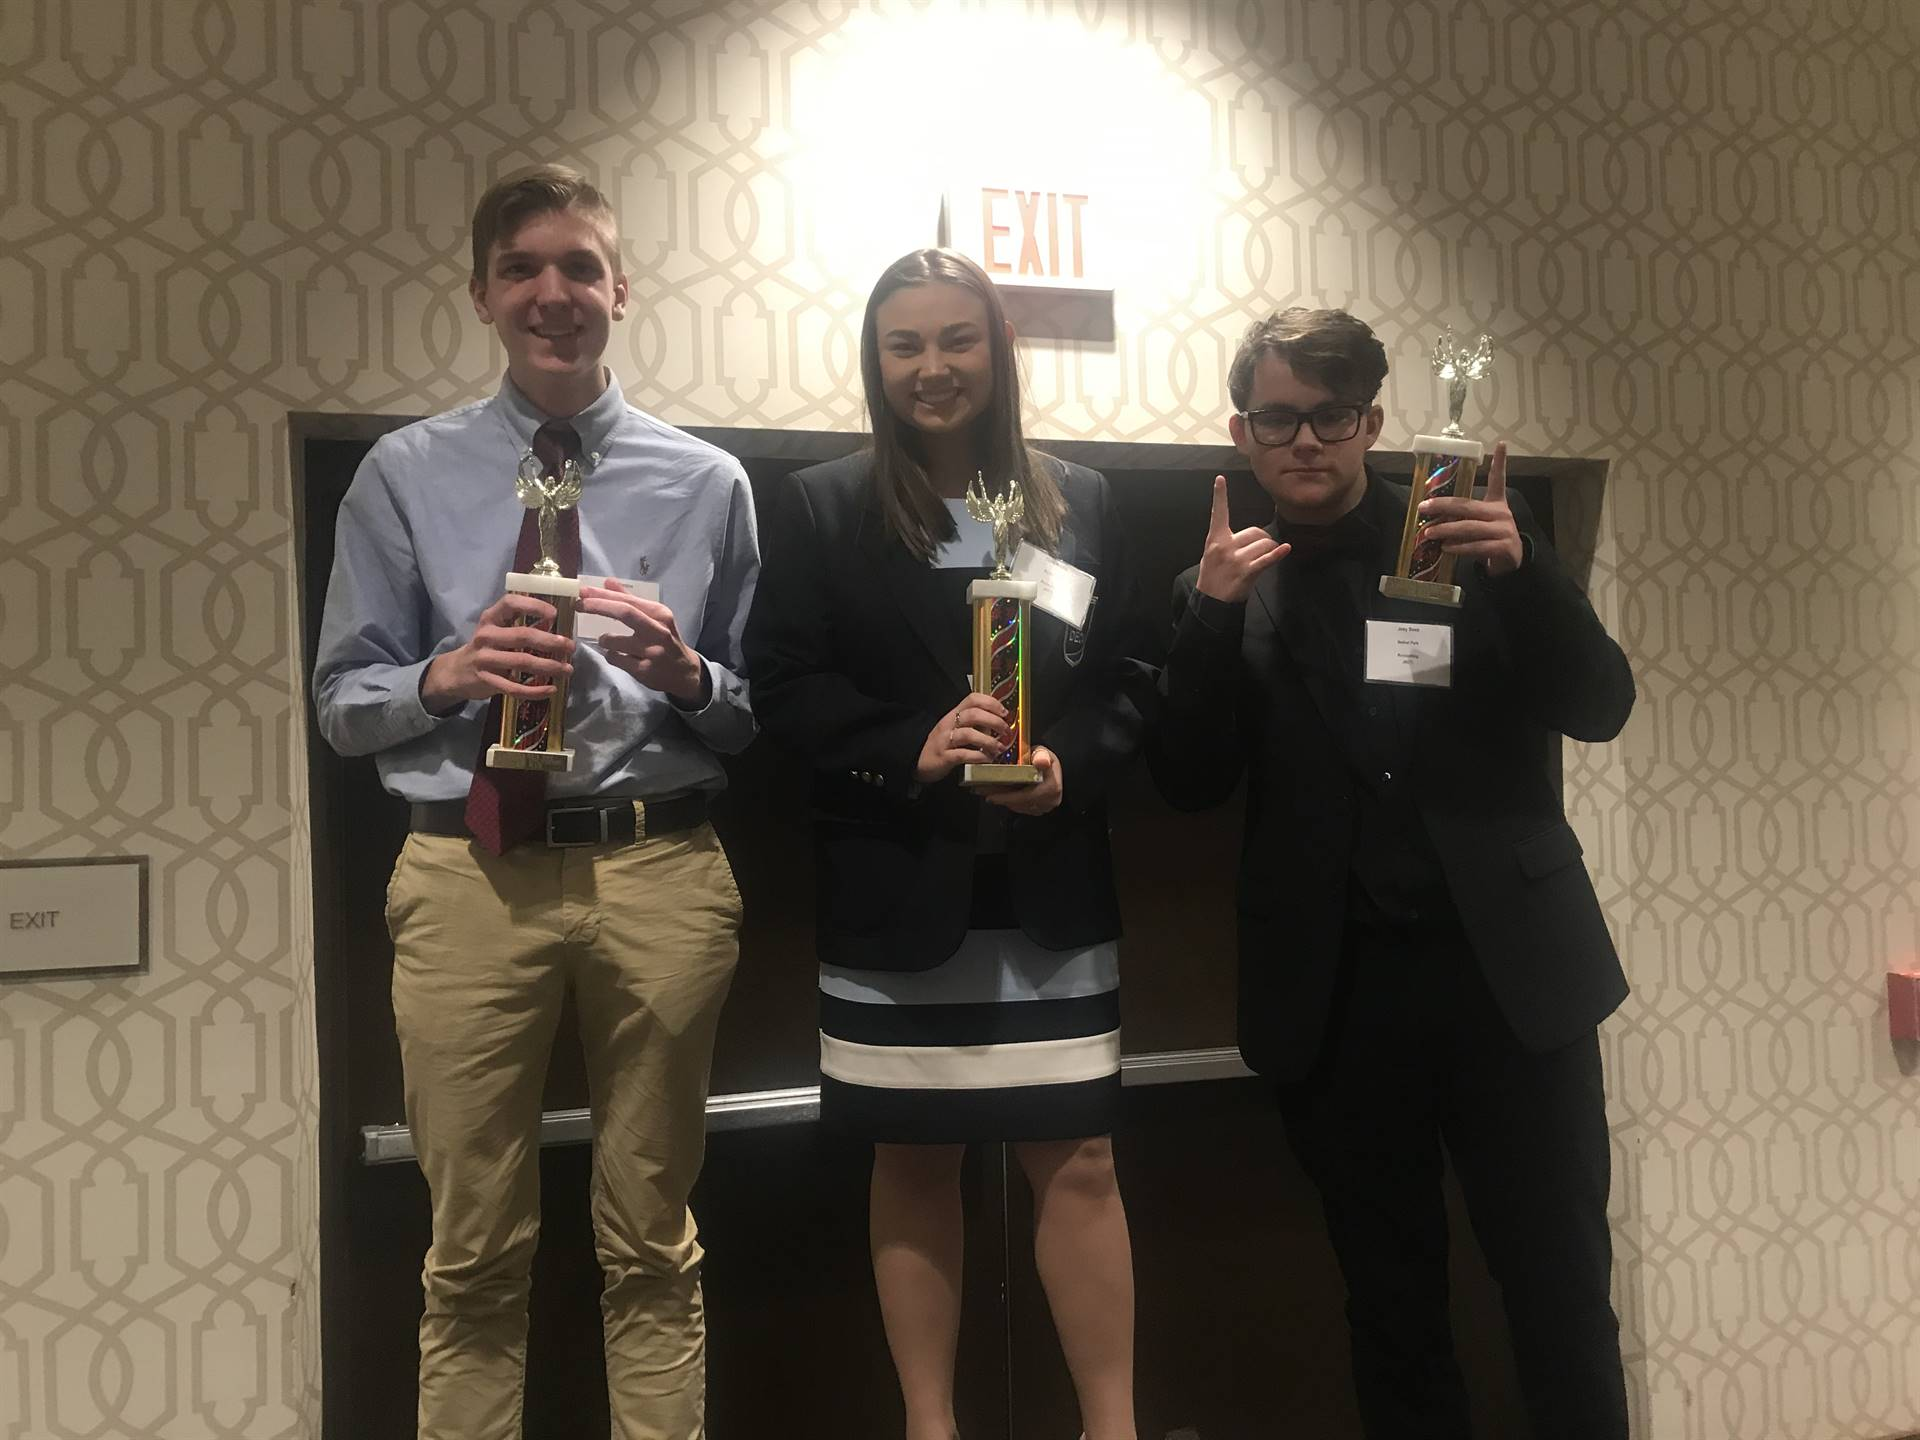 Three students holding their trophies